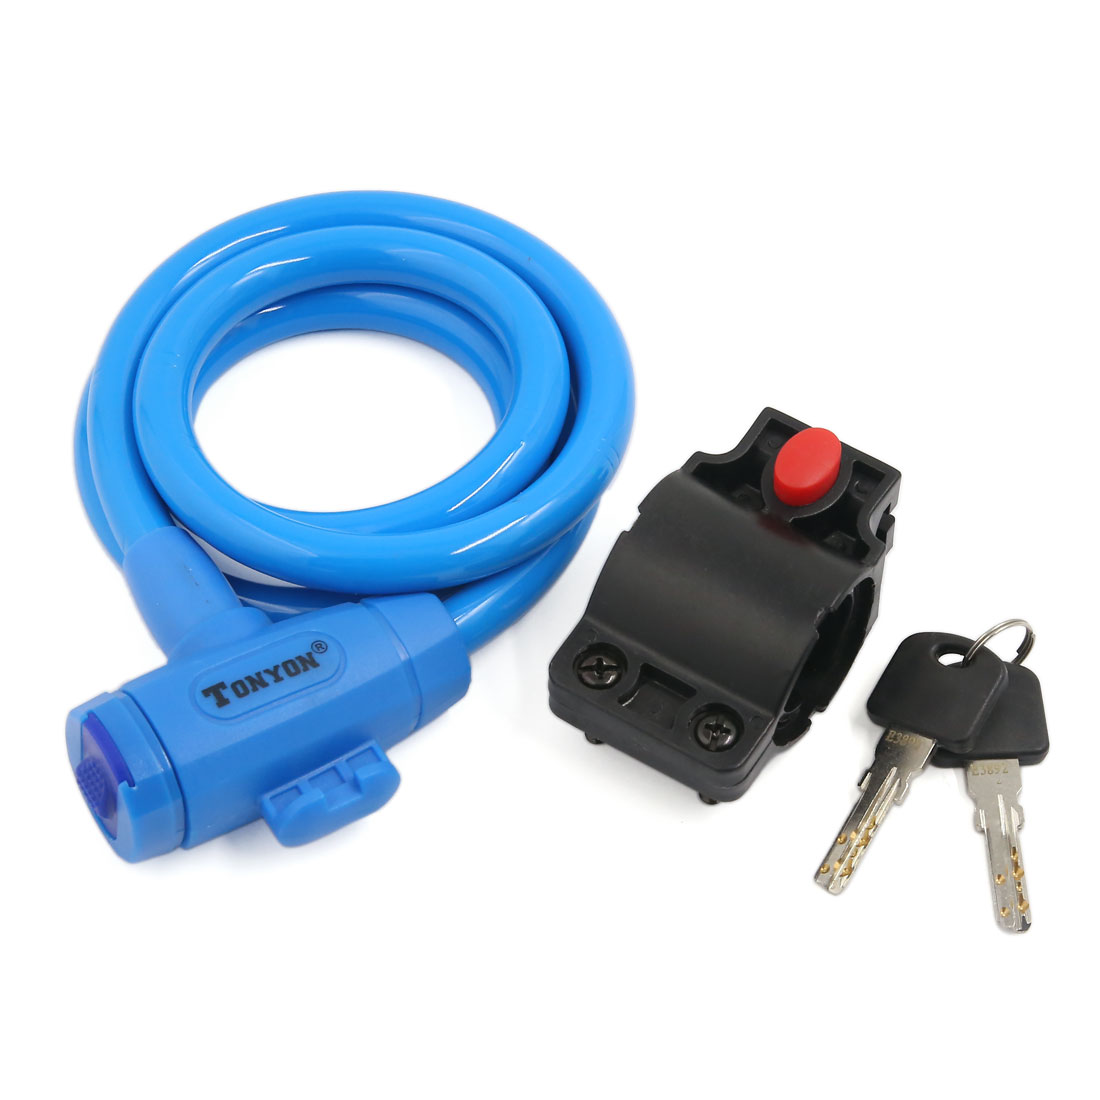 Bike Cycle Bicycle Anti Theft Device Security Wire Cable Lock Blue w 2 Keys